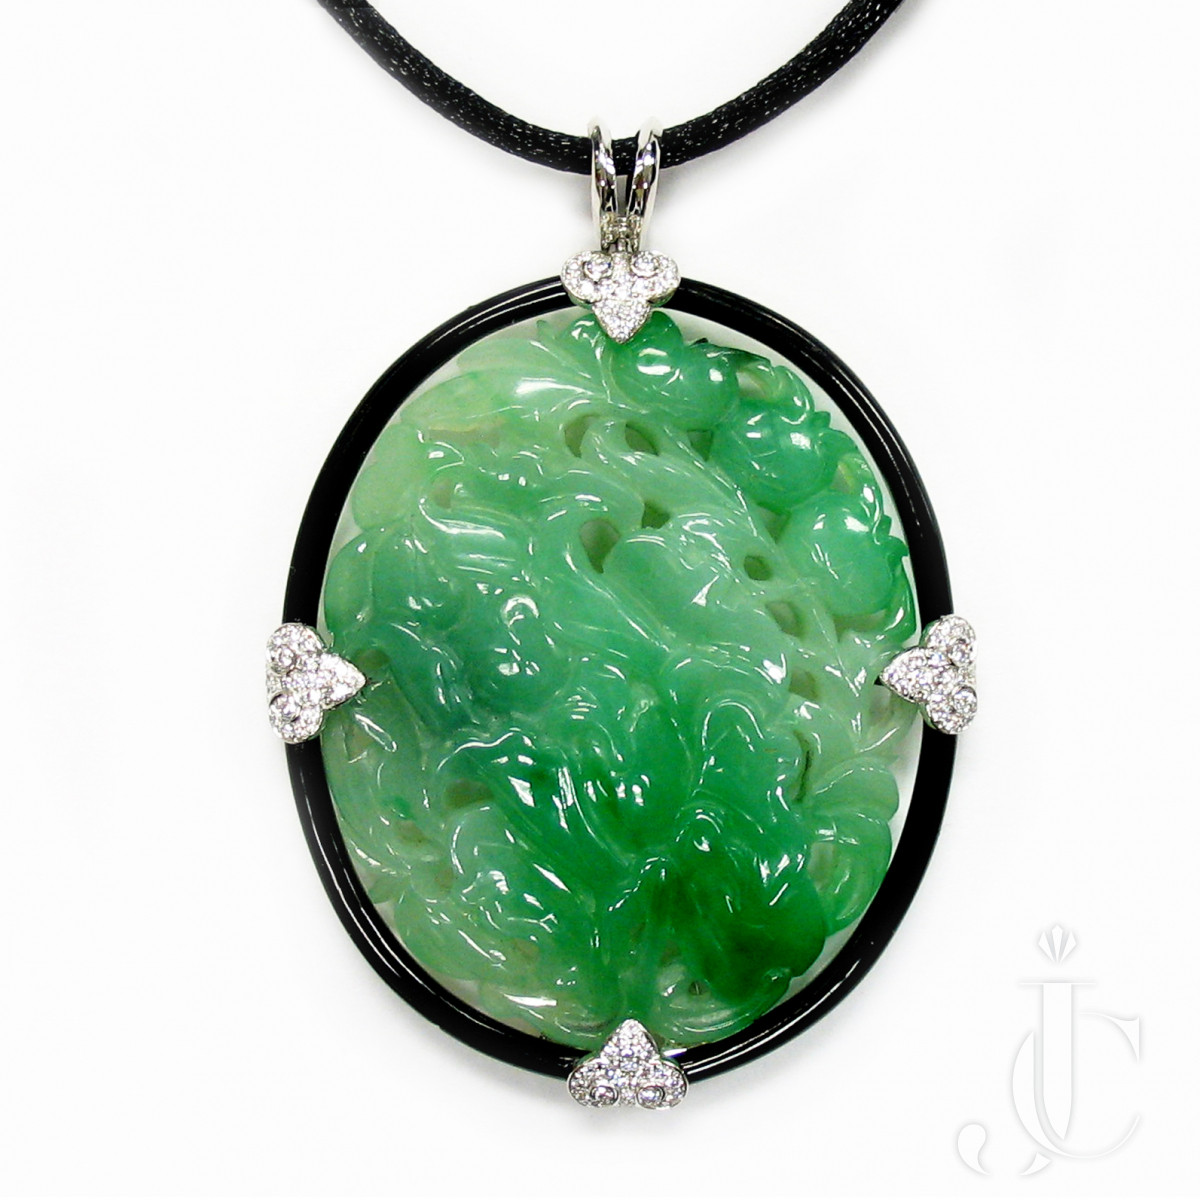 Carved Jade Diamond and Onyx Pendant, 18kt White Gold